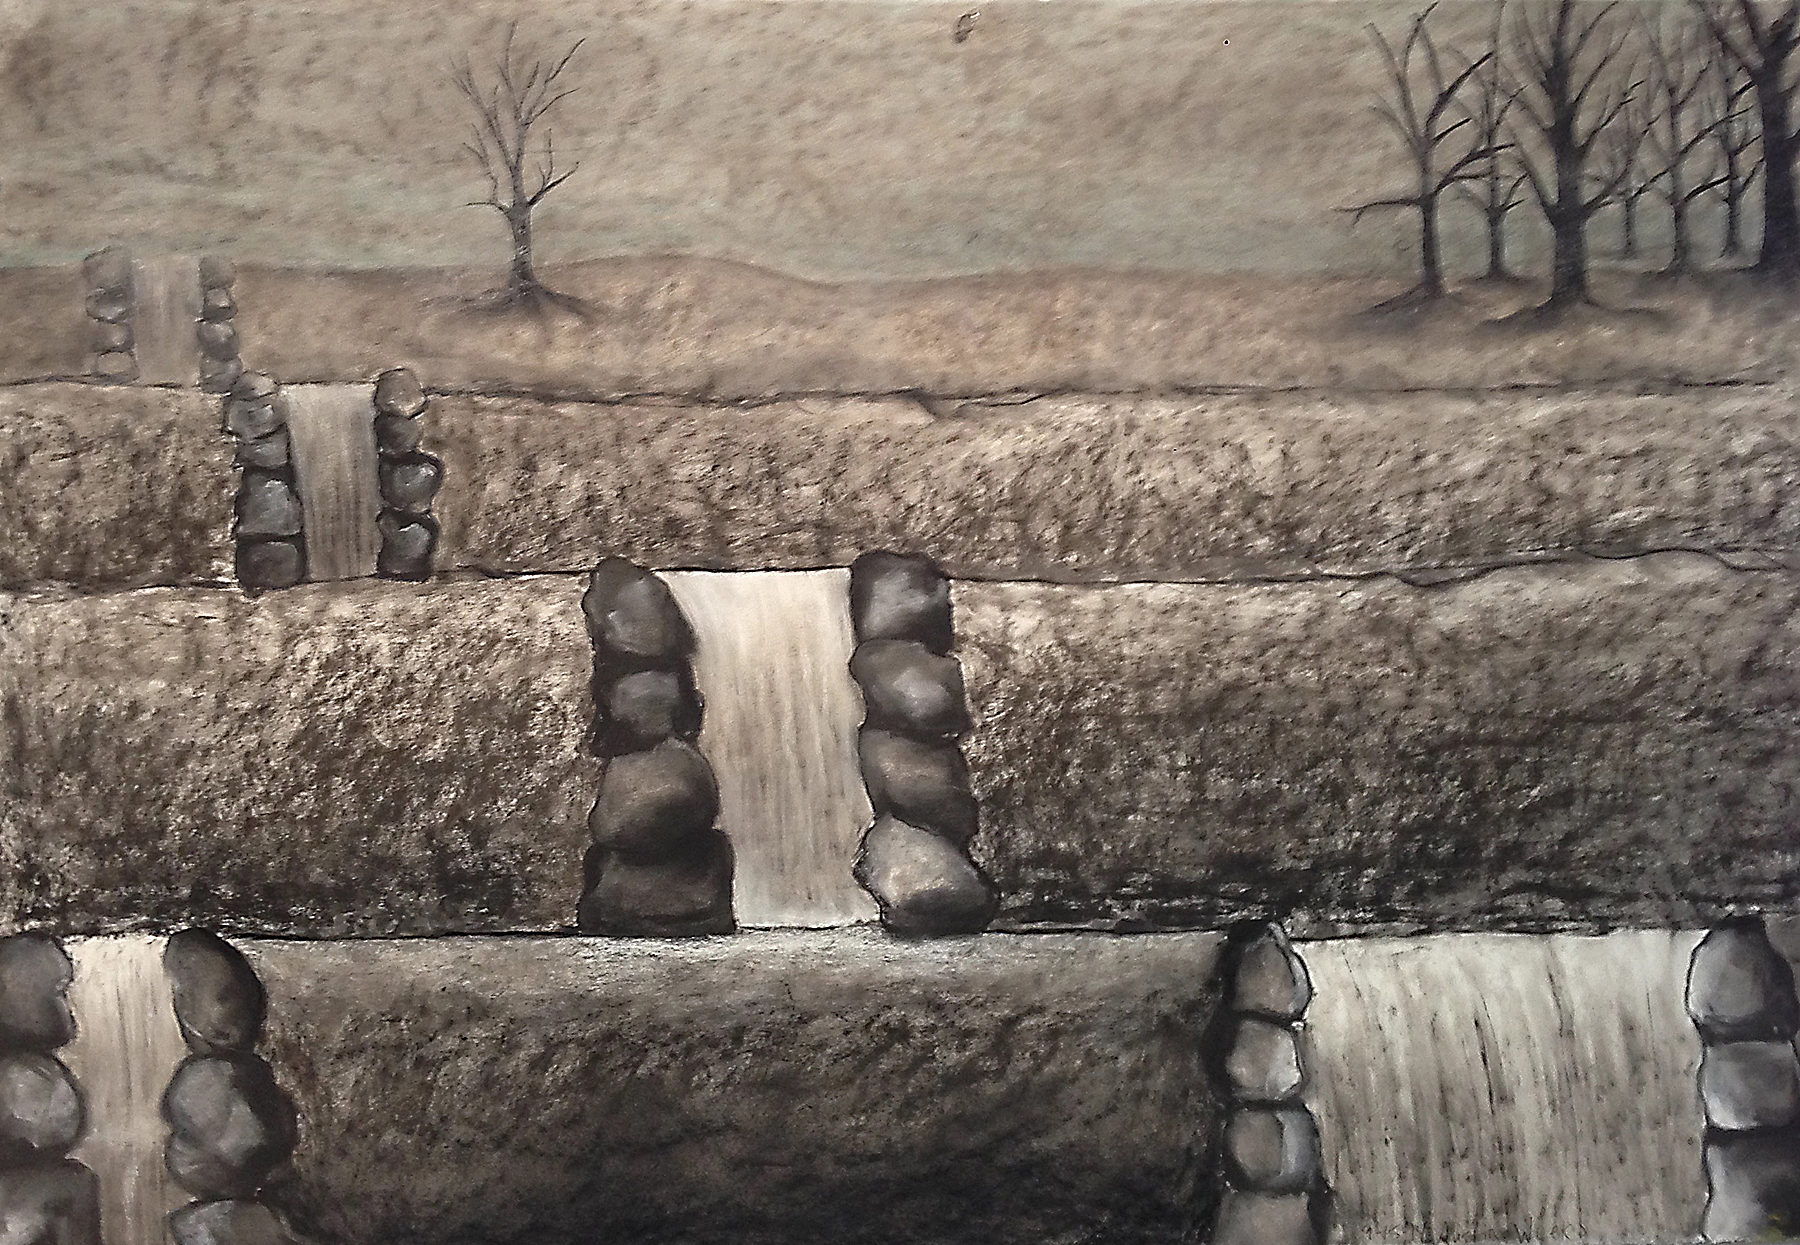 Scout K. Austin  and Kellie Weeks,  Untitled No. 41   pastel and charcoal, 44 x 30 in., $600.00